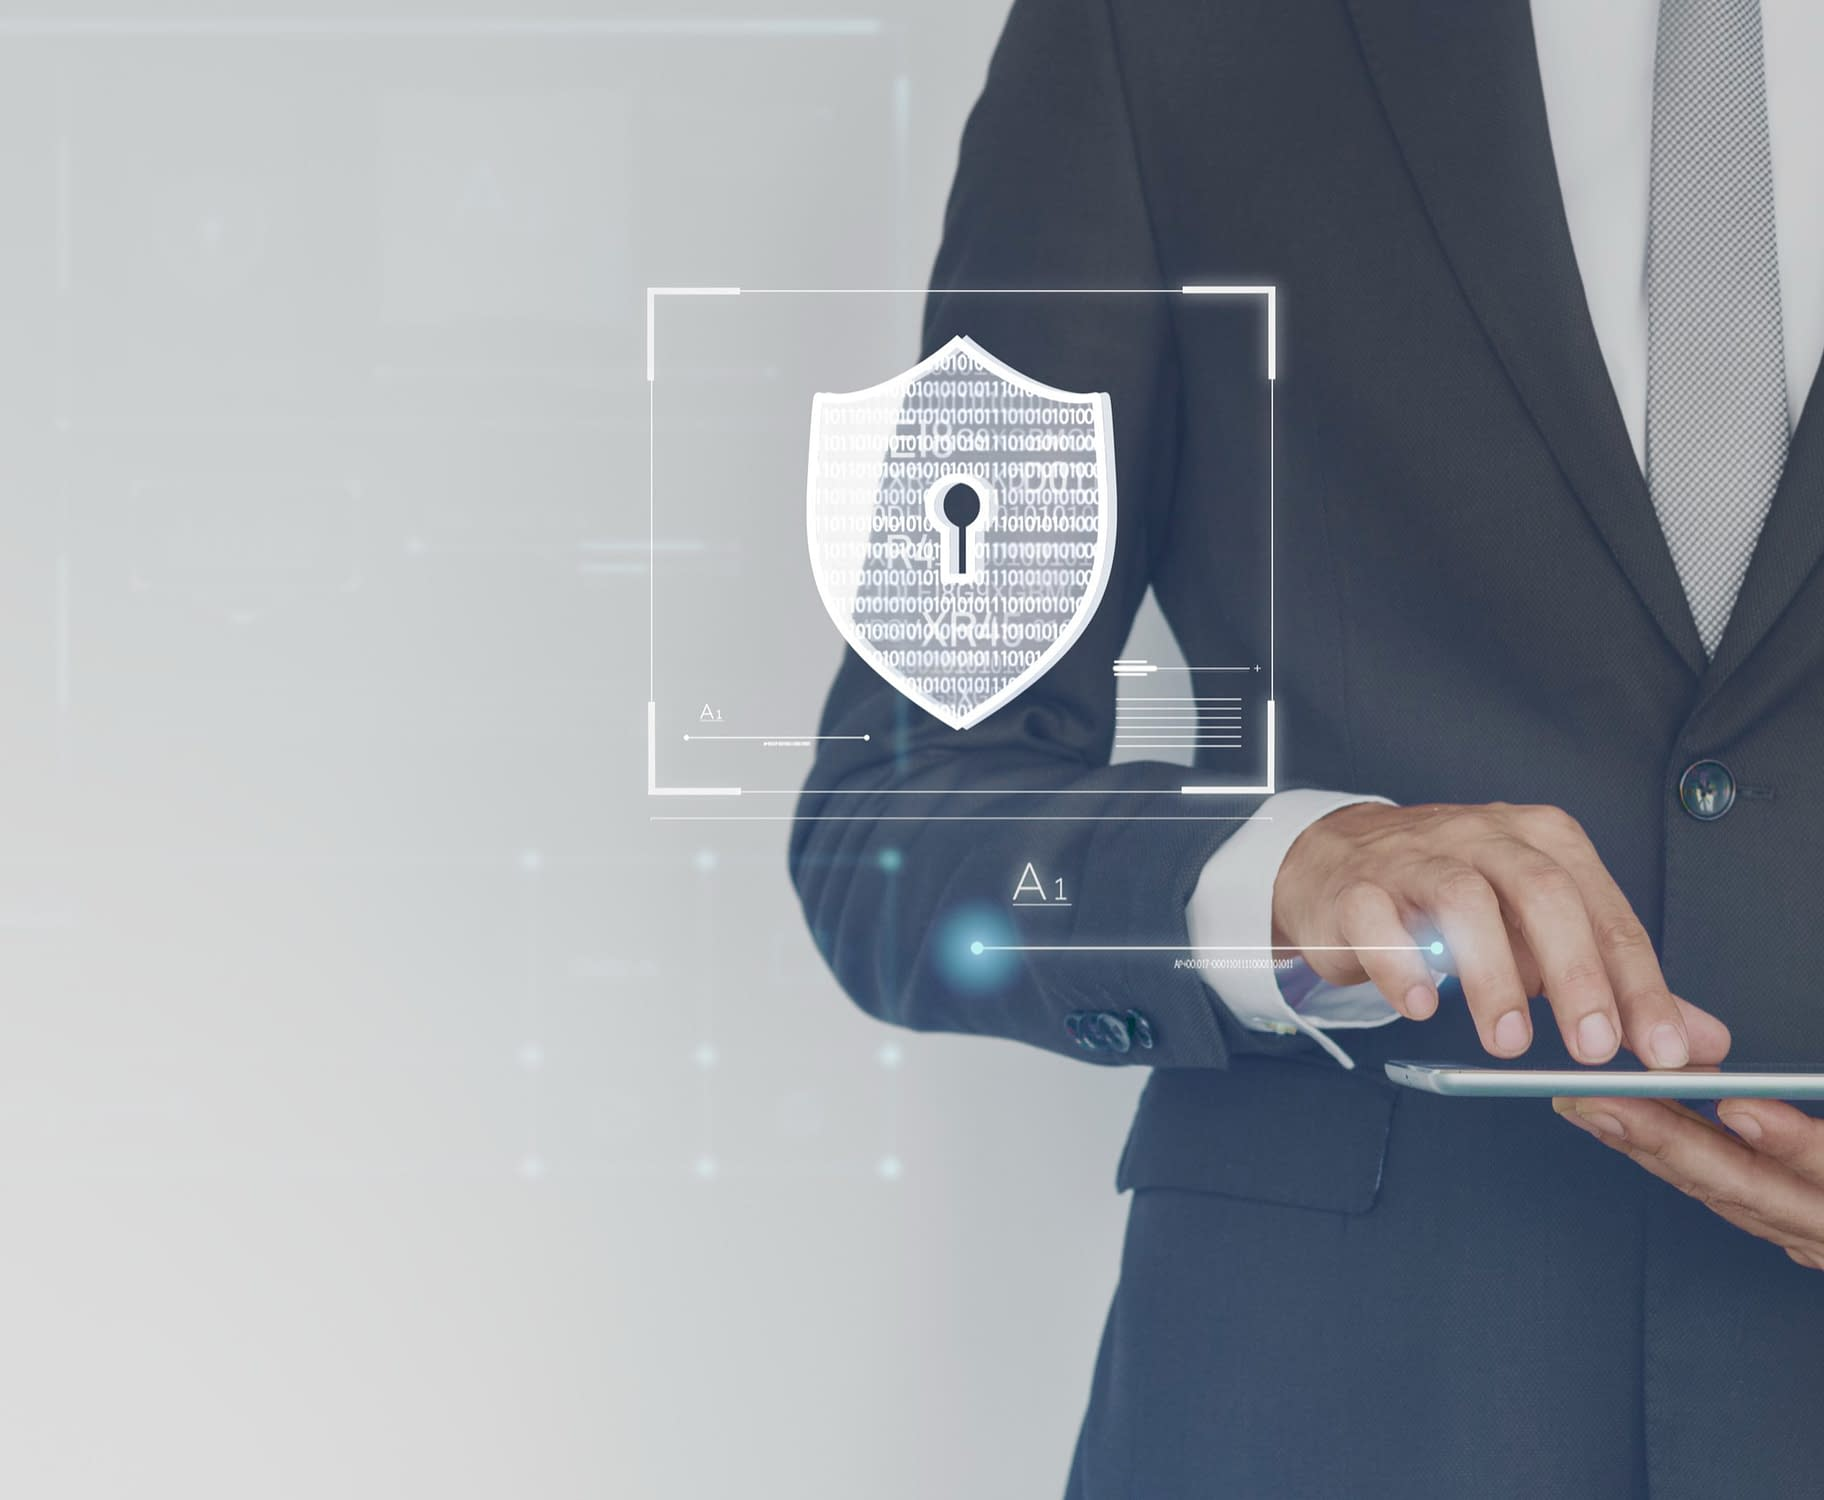 best cyber security company los angeles 2021, best cybersecurity companies los angeles, best cyber security company los angeles 2021